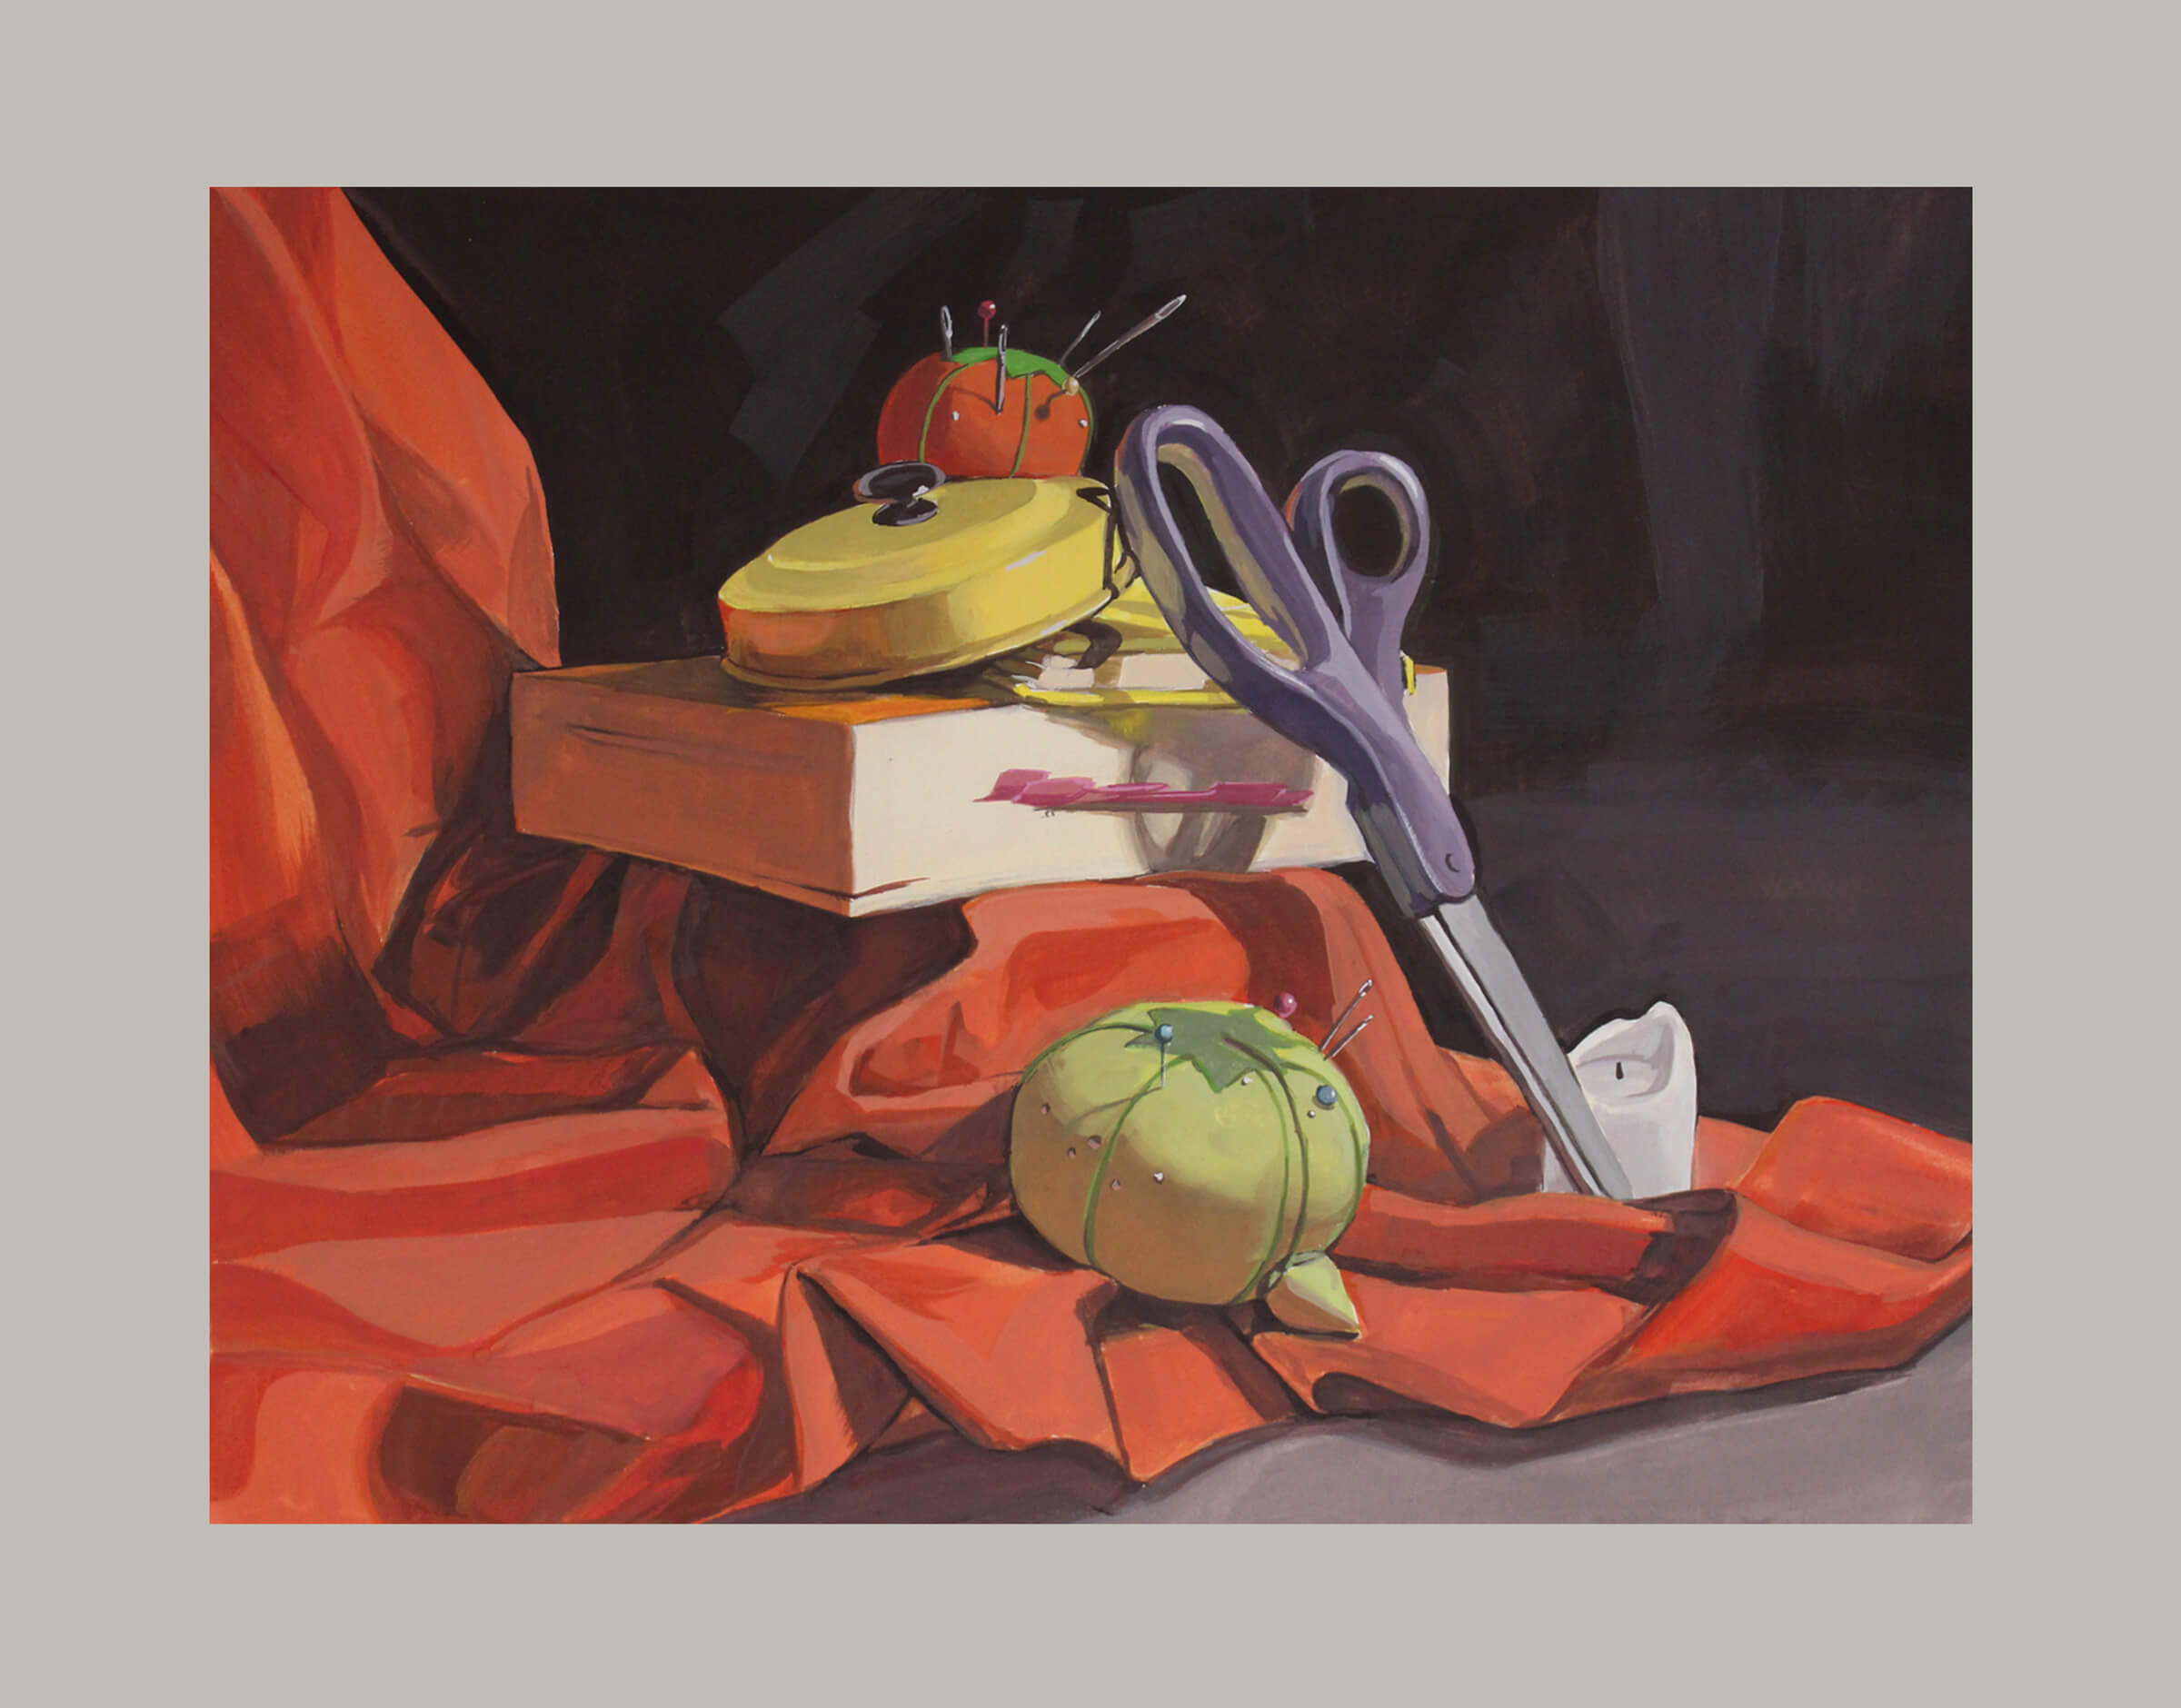 still-life traditional painting of pin cushions, a pair of scissors, a pot lid, books, and a candle on a red draped sheet